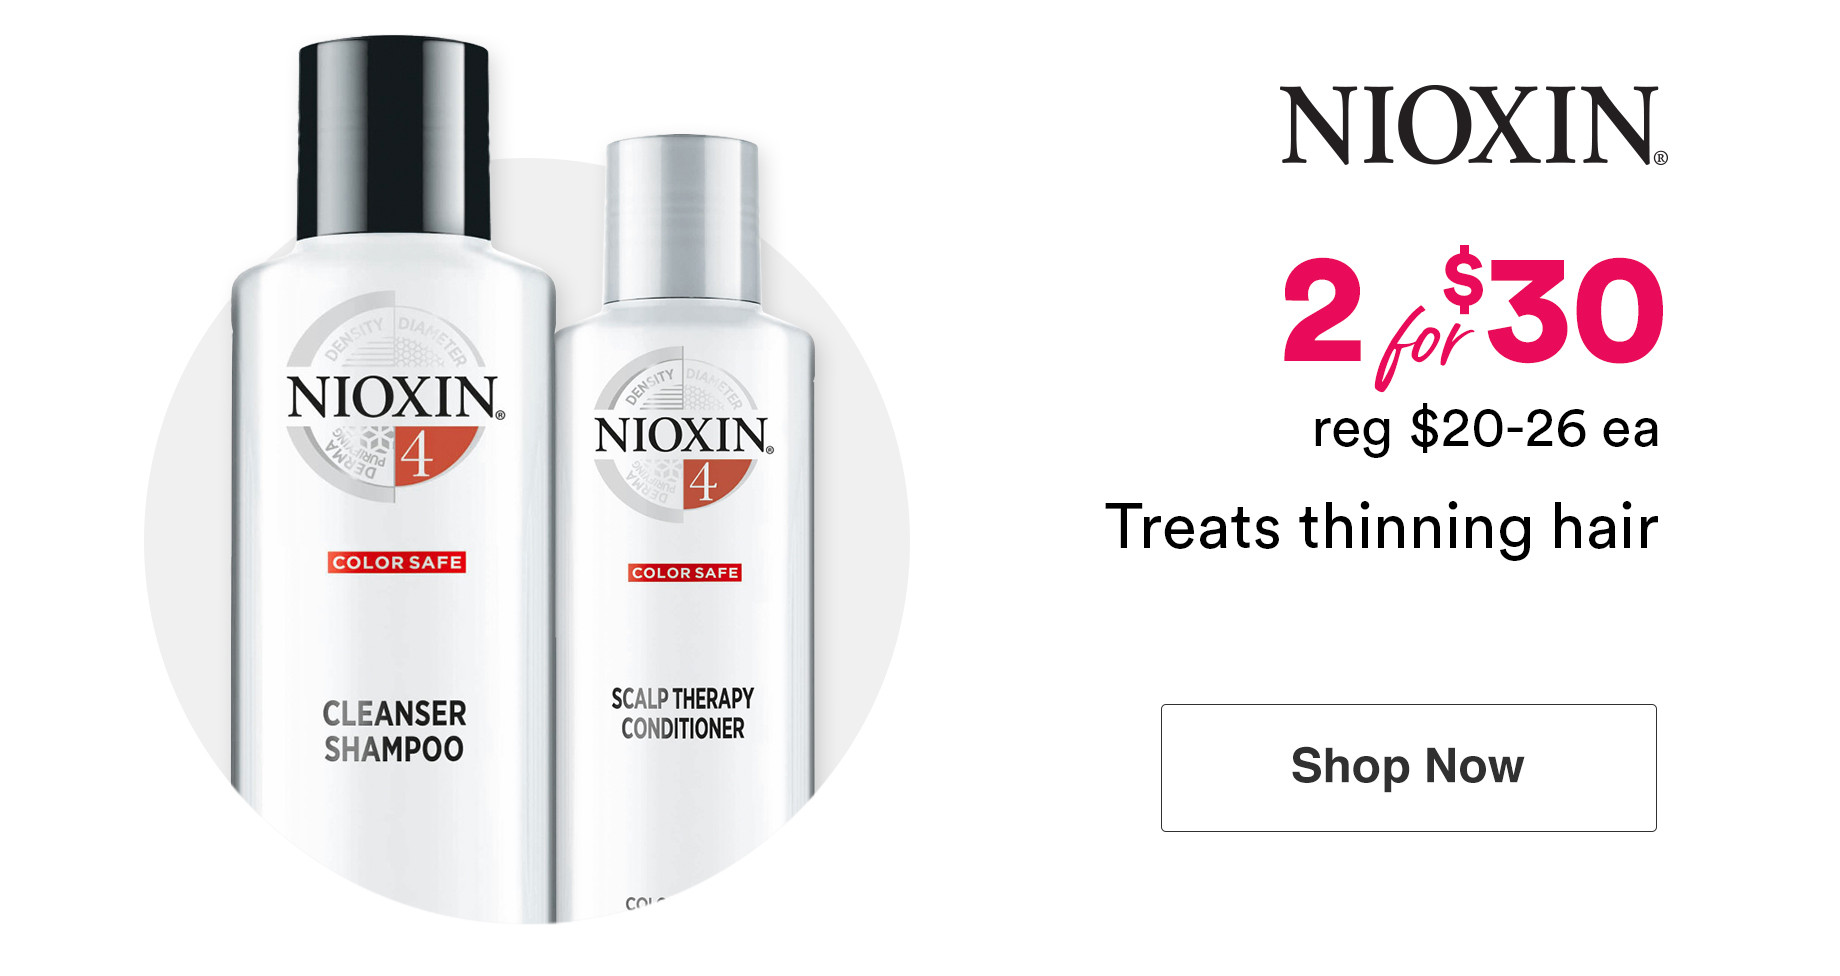 Nioxin Cleanser Shampoo and Scalp Therapy Conditioner is now 2 for $30